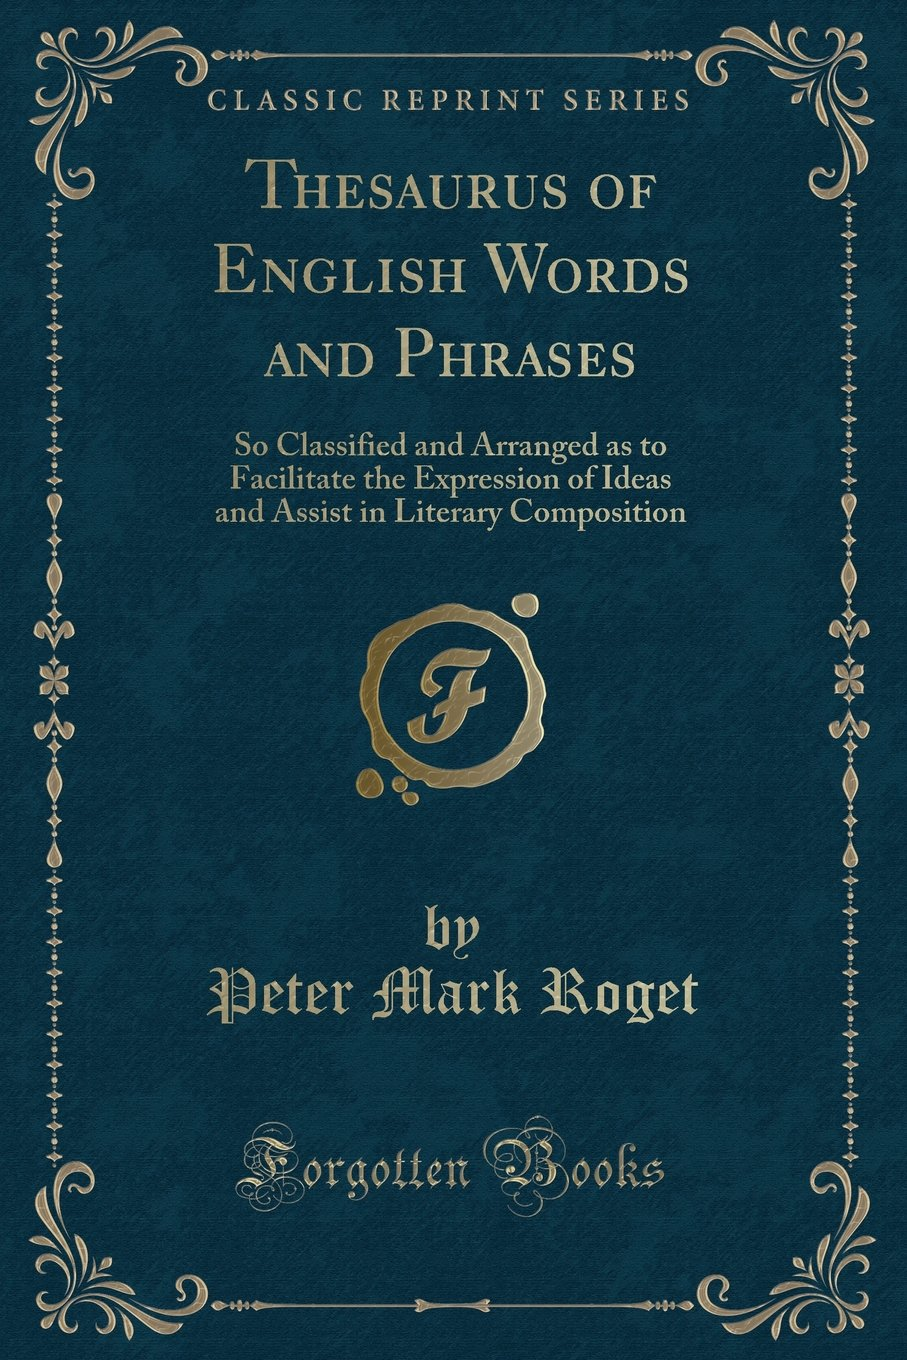 Thesaurus of English Words and Phrases: So Classified and Arranged as to Facilitate the Expression of Ideas and Assist in Literary Composition (Classic Reprint) pdf epub